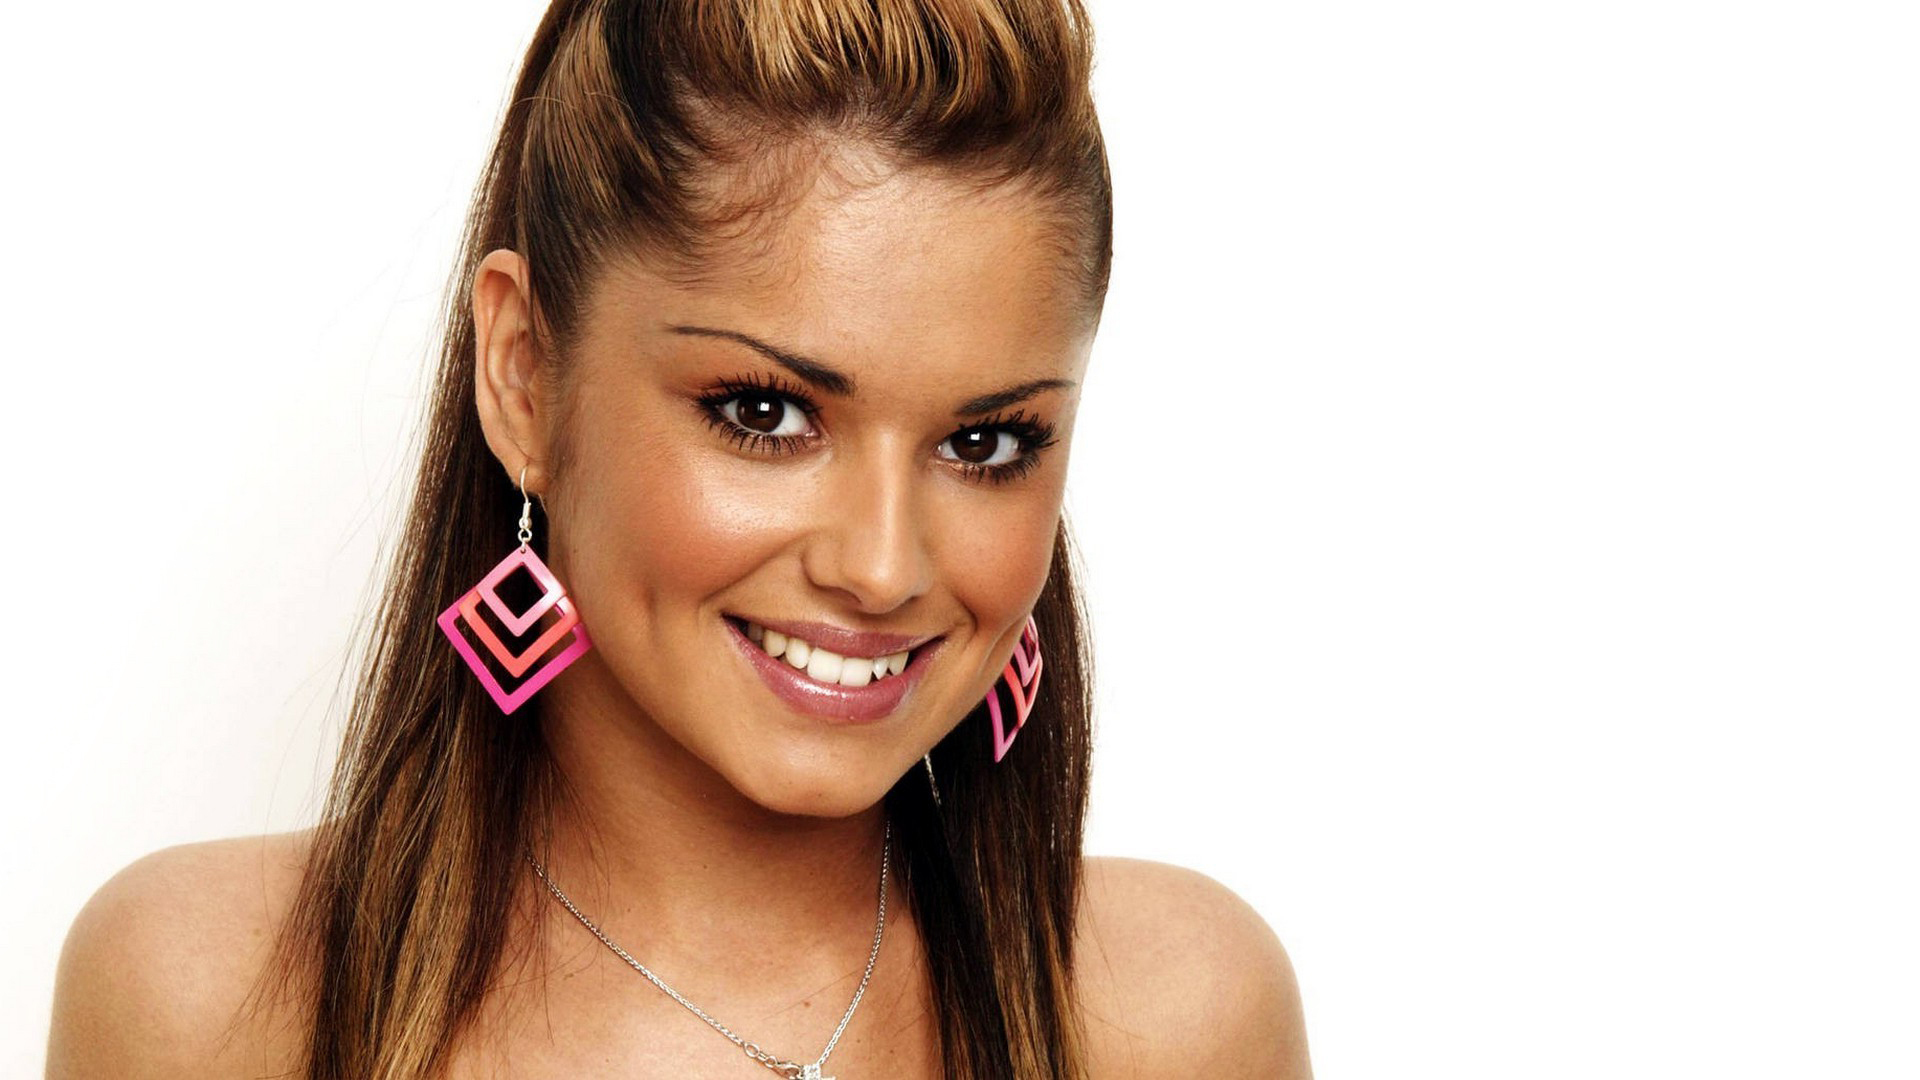 Cheryl Cole Wallpapers Images Photos Pictures Backgrounds Shia Labeouf Just Do It